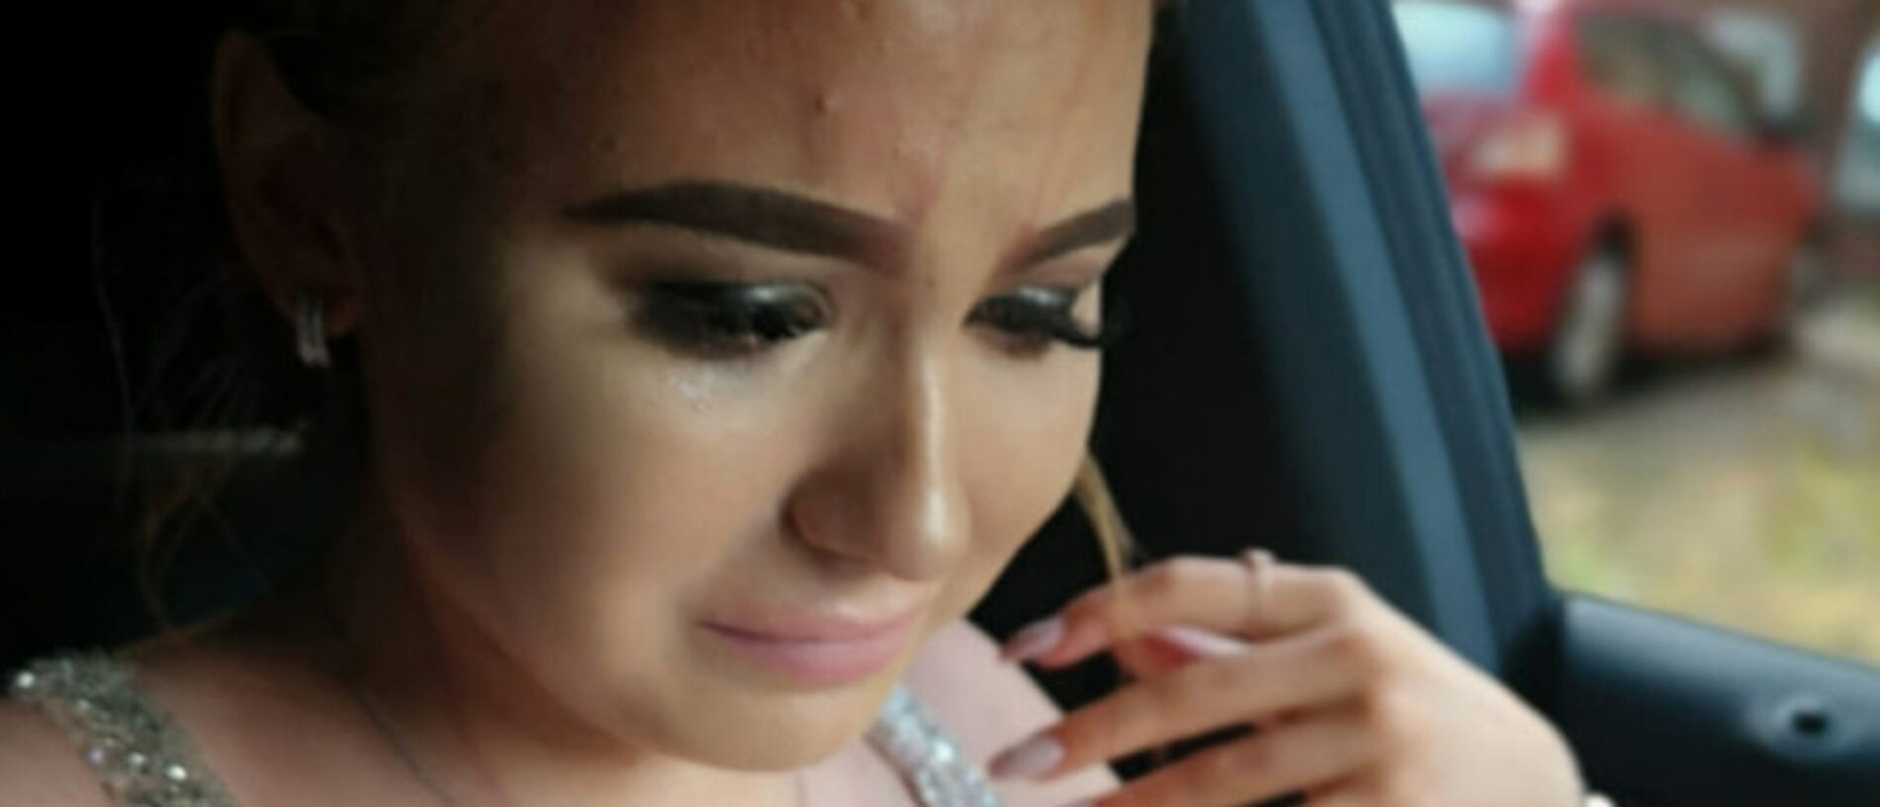 A teenage girl was left in tears after a cruel bully ruined her formal dress — pouring a jug of juice over her.